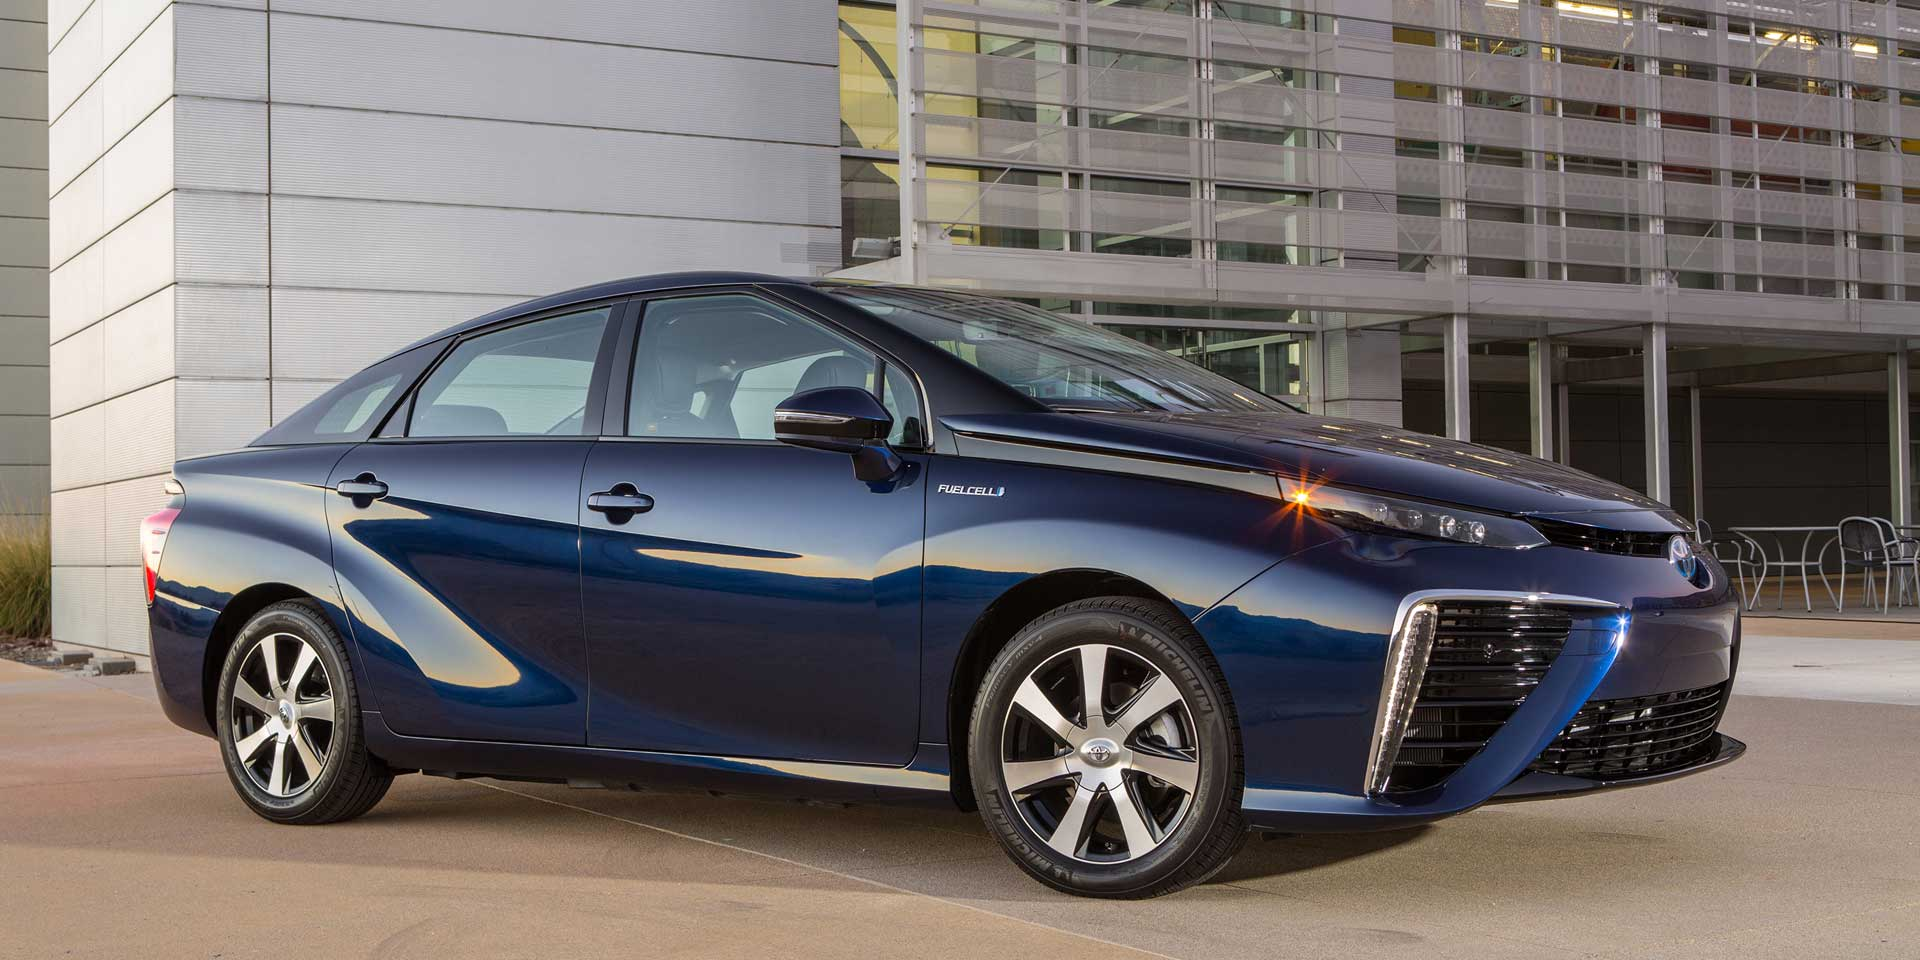 2017 Toyota Mirai The Will Be One Of Most Unique Vehicles On Display At Chicago Auto Show Thanks To Its Fuel Cell Energy